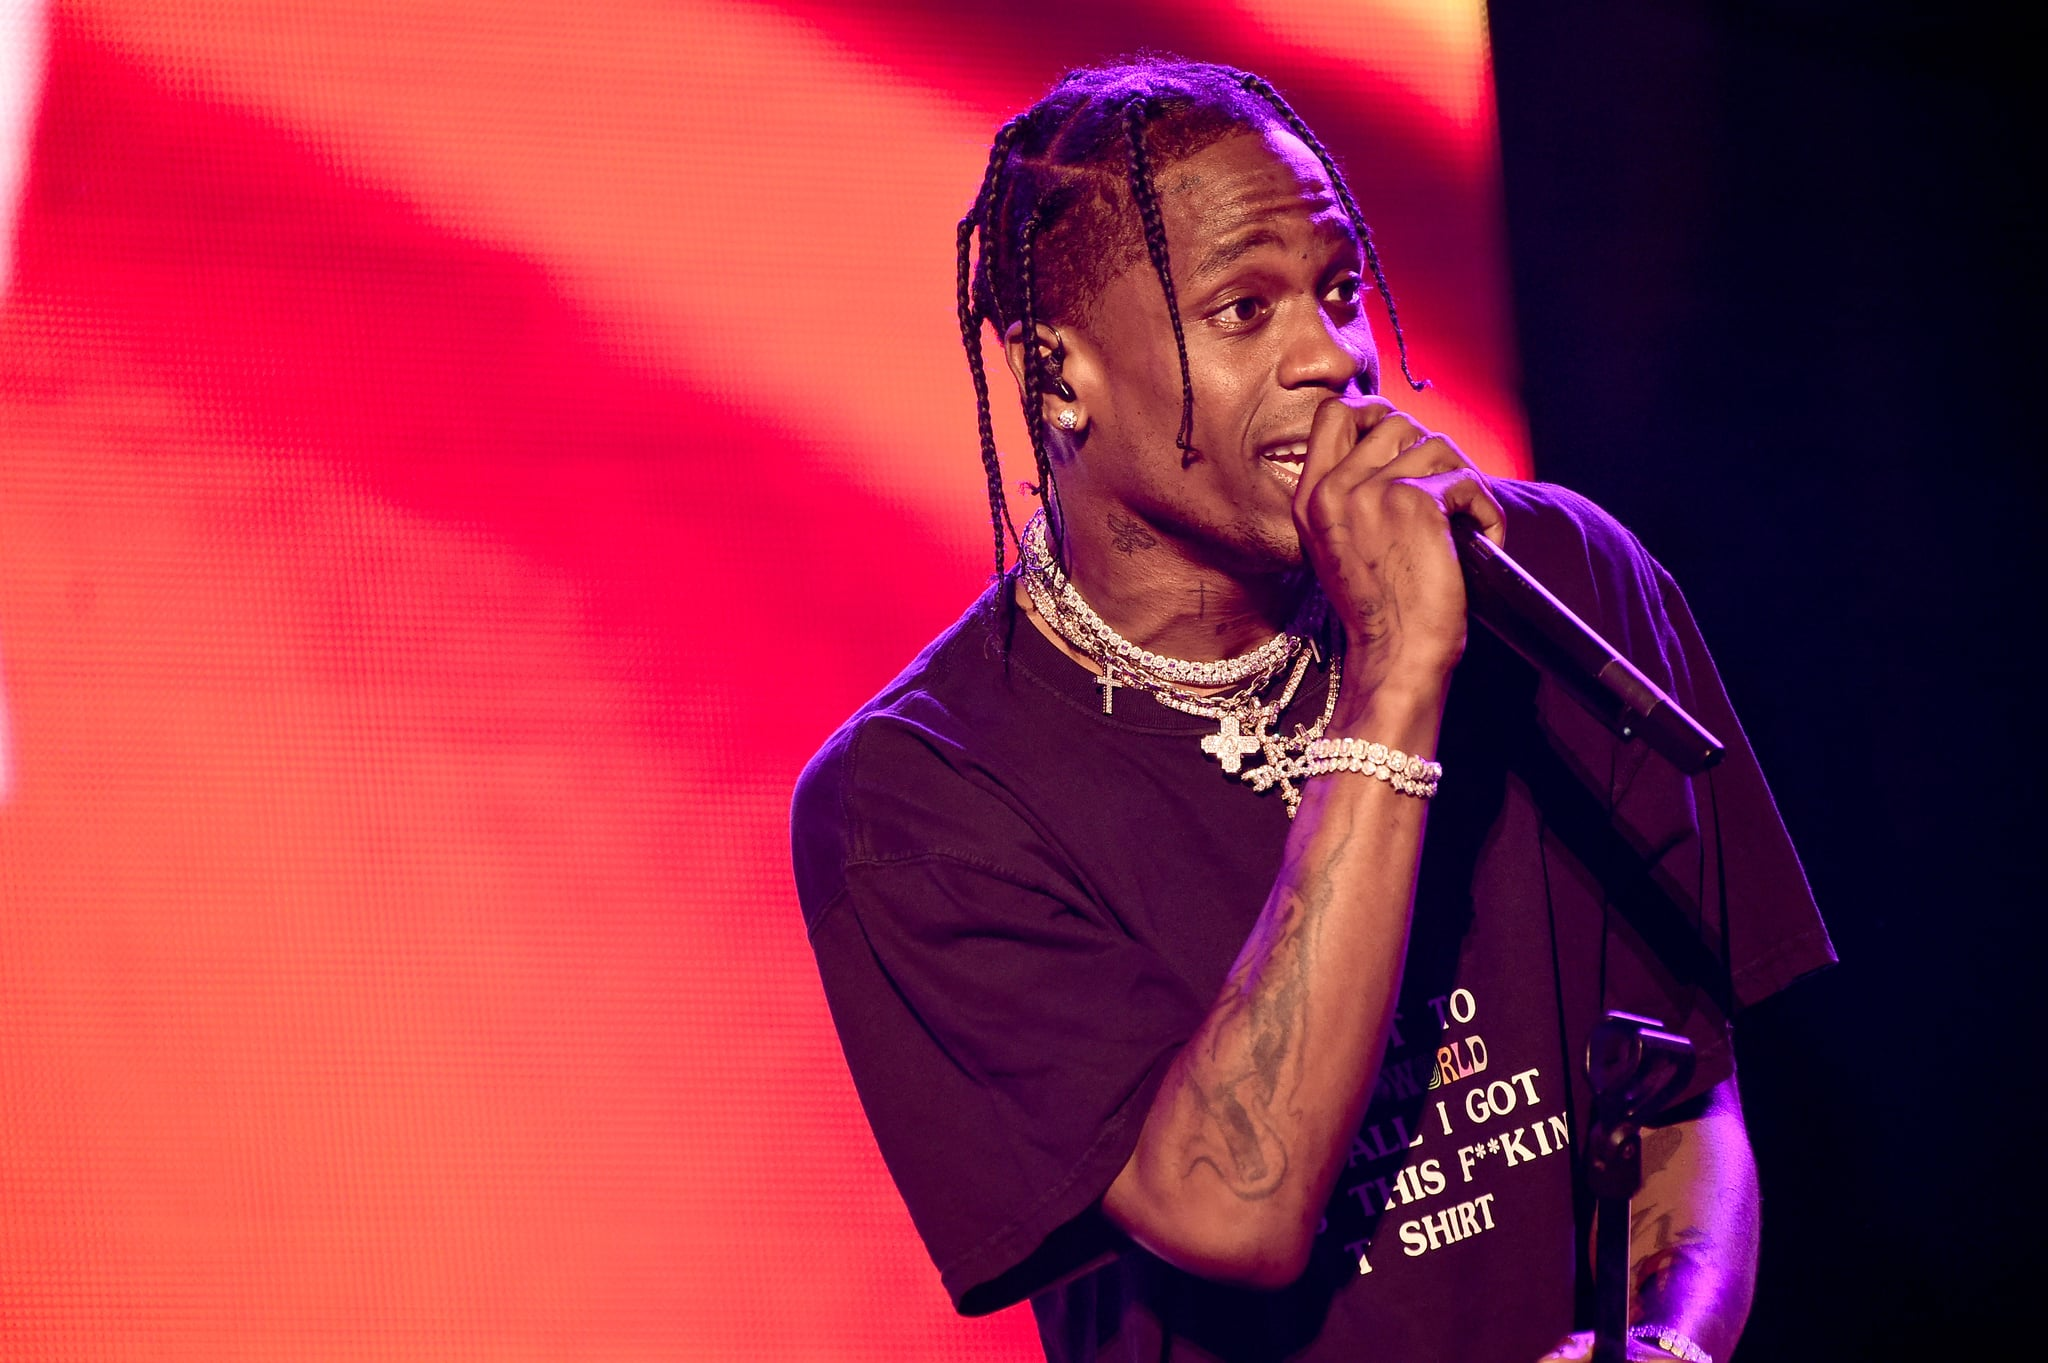 NEW YORK, NY - JUNE 02:  Travis Scott performs on stage on Day 2 of the 2018 Governors Ball Music Festival on June 2, 2018 in New York City.  (Photo by Steven Ferdman/Getty Images)